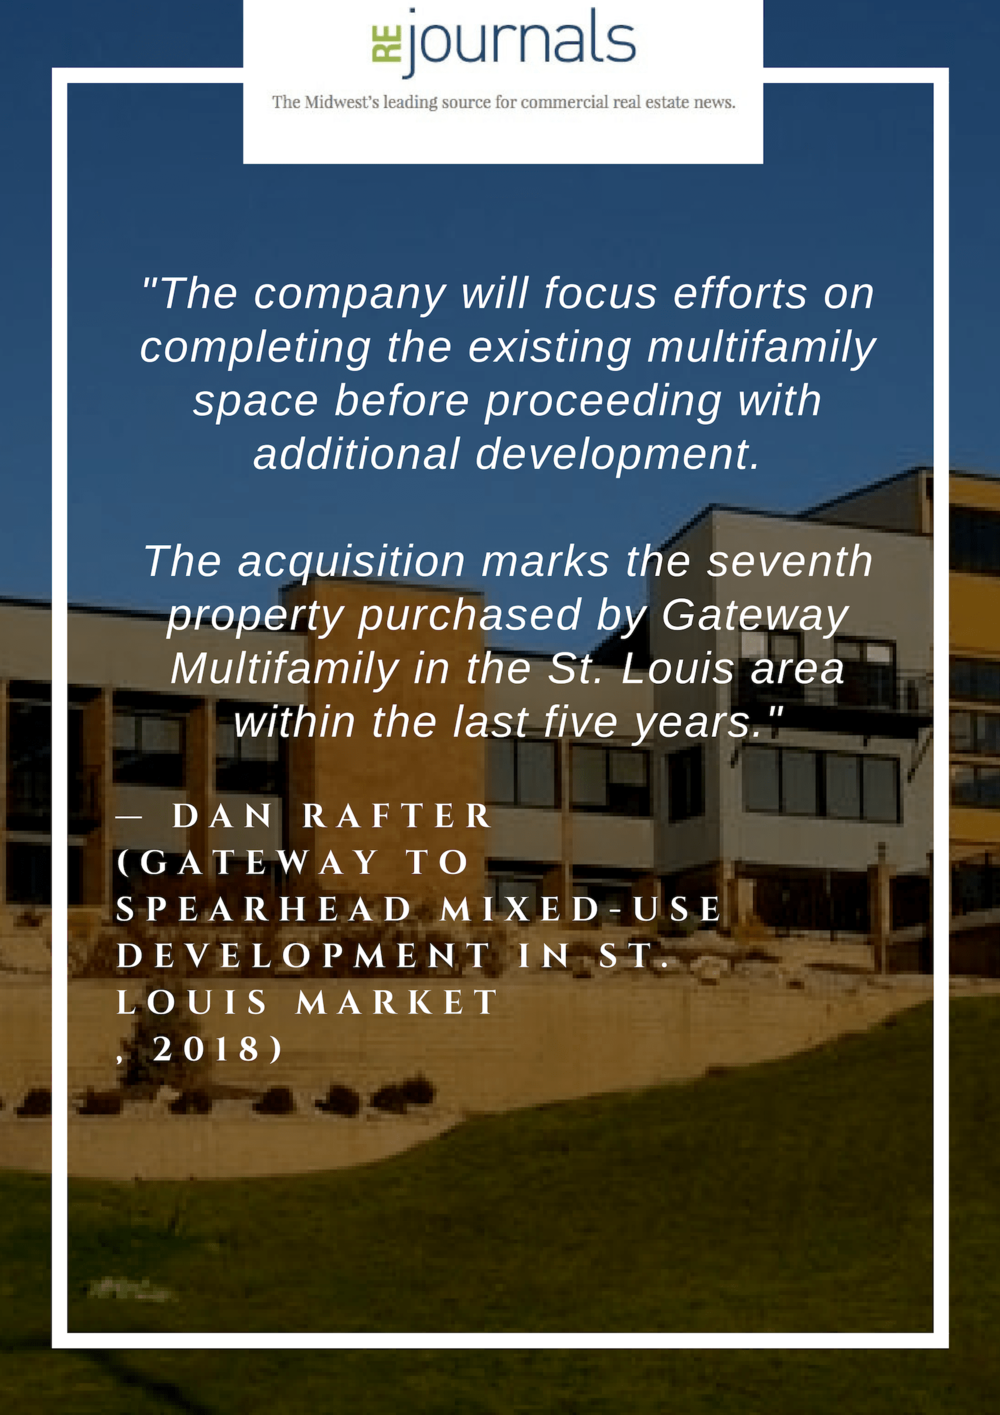 Gateway to spearhead mixed-use development in St. Louis market